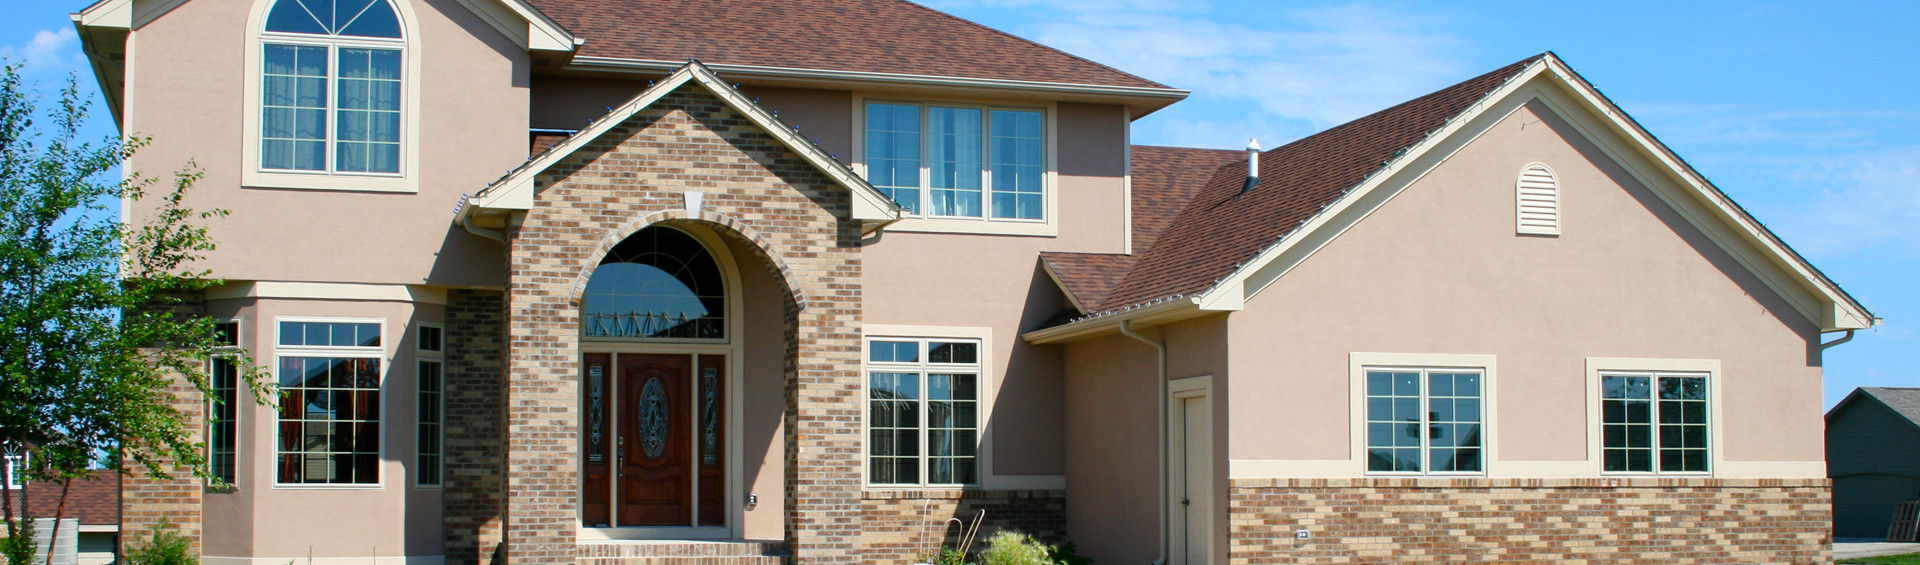 Edens Structural Solutions | Tulsa